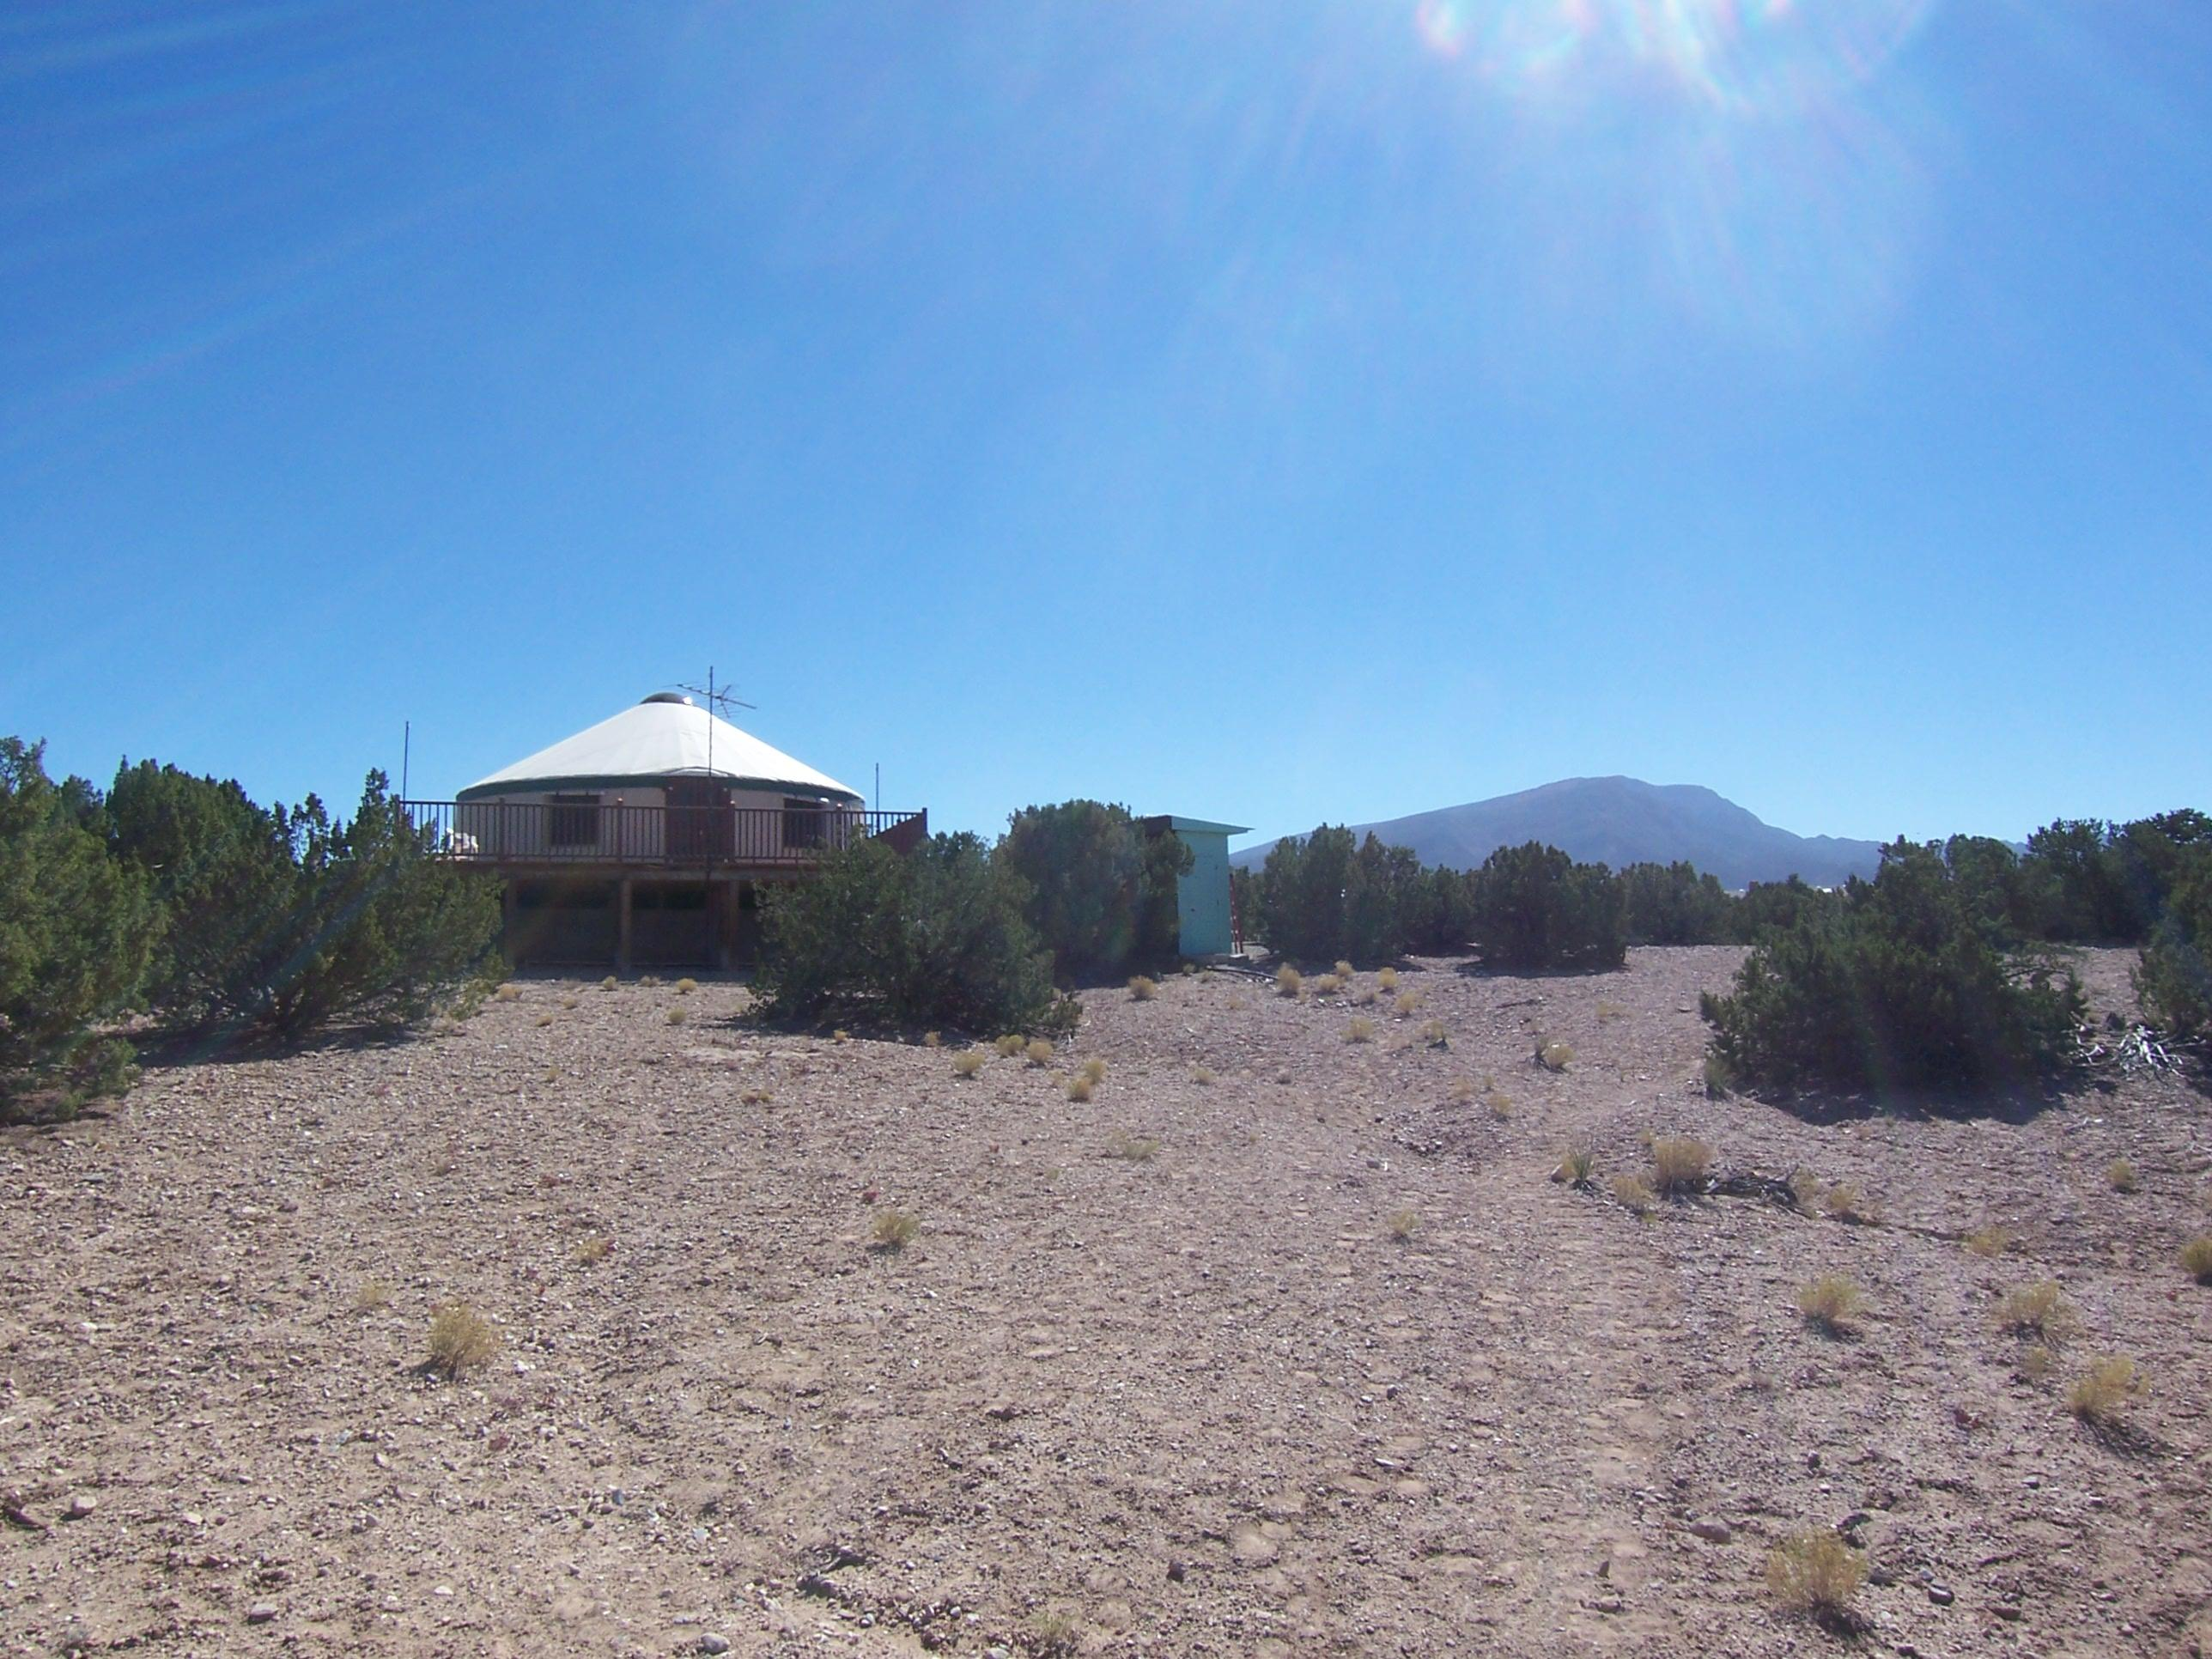 UNIQUE GETAWAY IN PLACITAS! YURT ON 3/4 ACRE NEXT TO THOUSANDS OF ACRES OF PUBLIC LAND! $69,000. A wonderful escape from the city that is just a 25 minute drive from Albuquerque! This property is bordered on the north and the east by 3100 acres of Public Land! There is plenty of room to build a permanent structure on this 3/4 acres! Dynamic structure with vaulted ceilings and skylight. This is one room that has the space for bedroom, kitchen, living & dining room. Exterior building has composting toilet and shower room. Beautiful deck to enjoy the serene views all around! Owners will consider short term financing with at least $10,000 down at 5% interest. If you want more land, the owners have an additional 3/4 acre lot (adjacent to the southwest) that they will sell for $50,000.